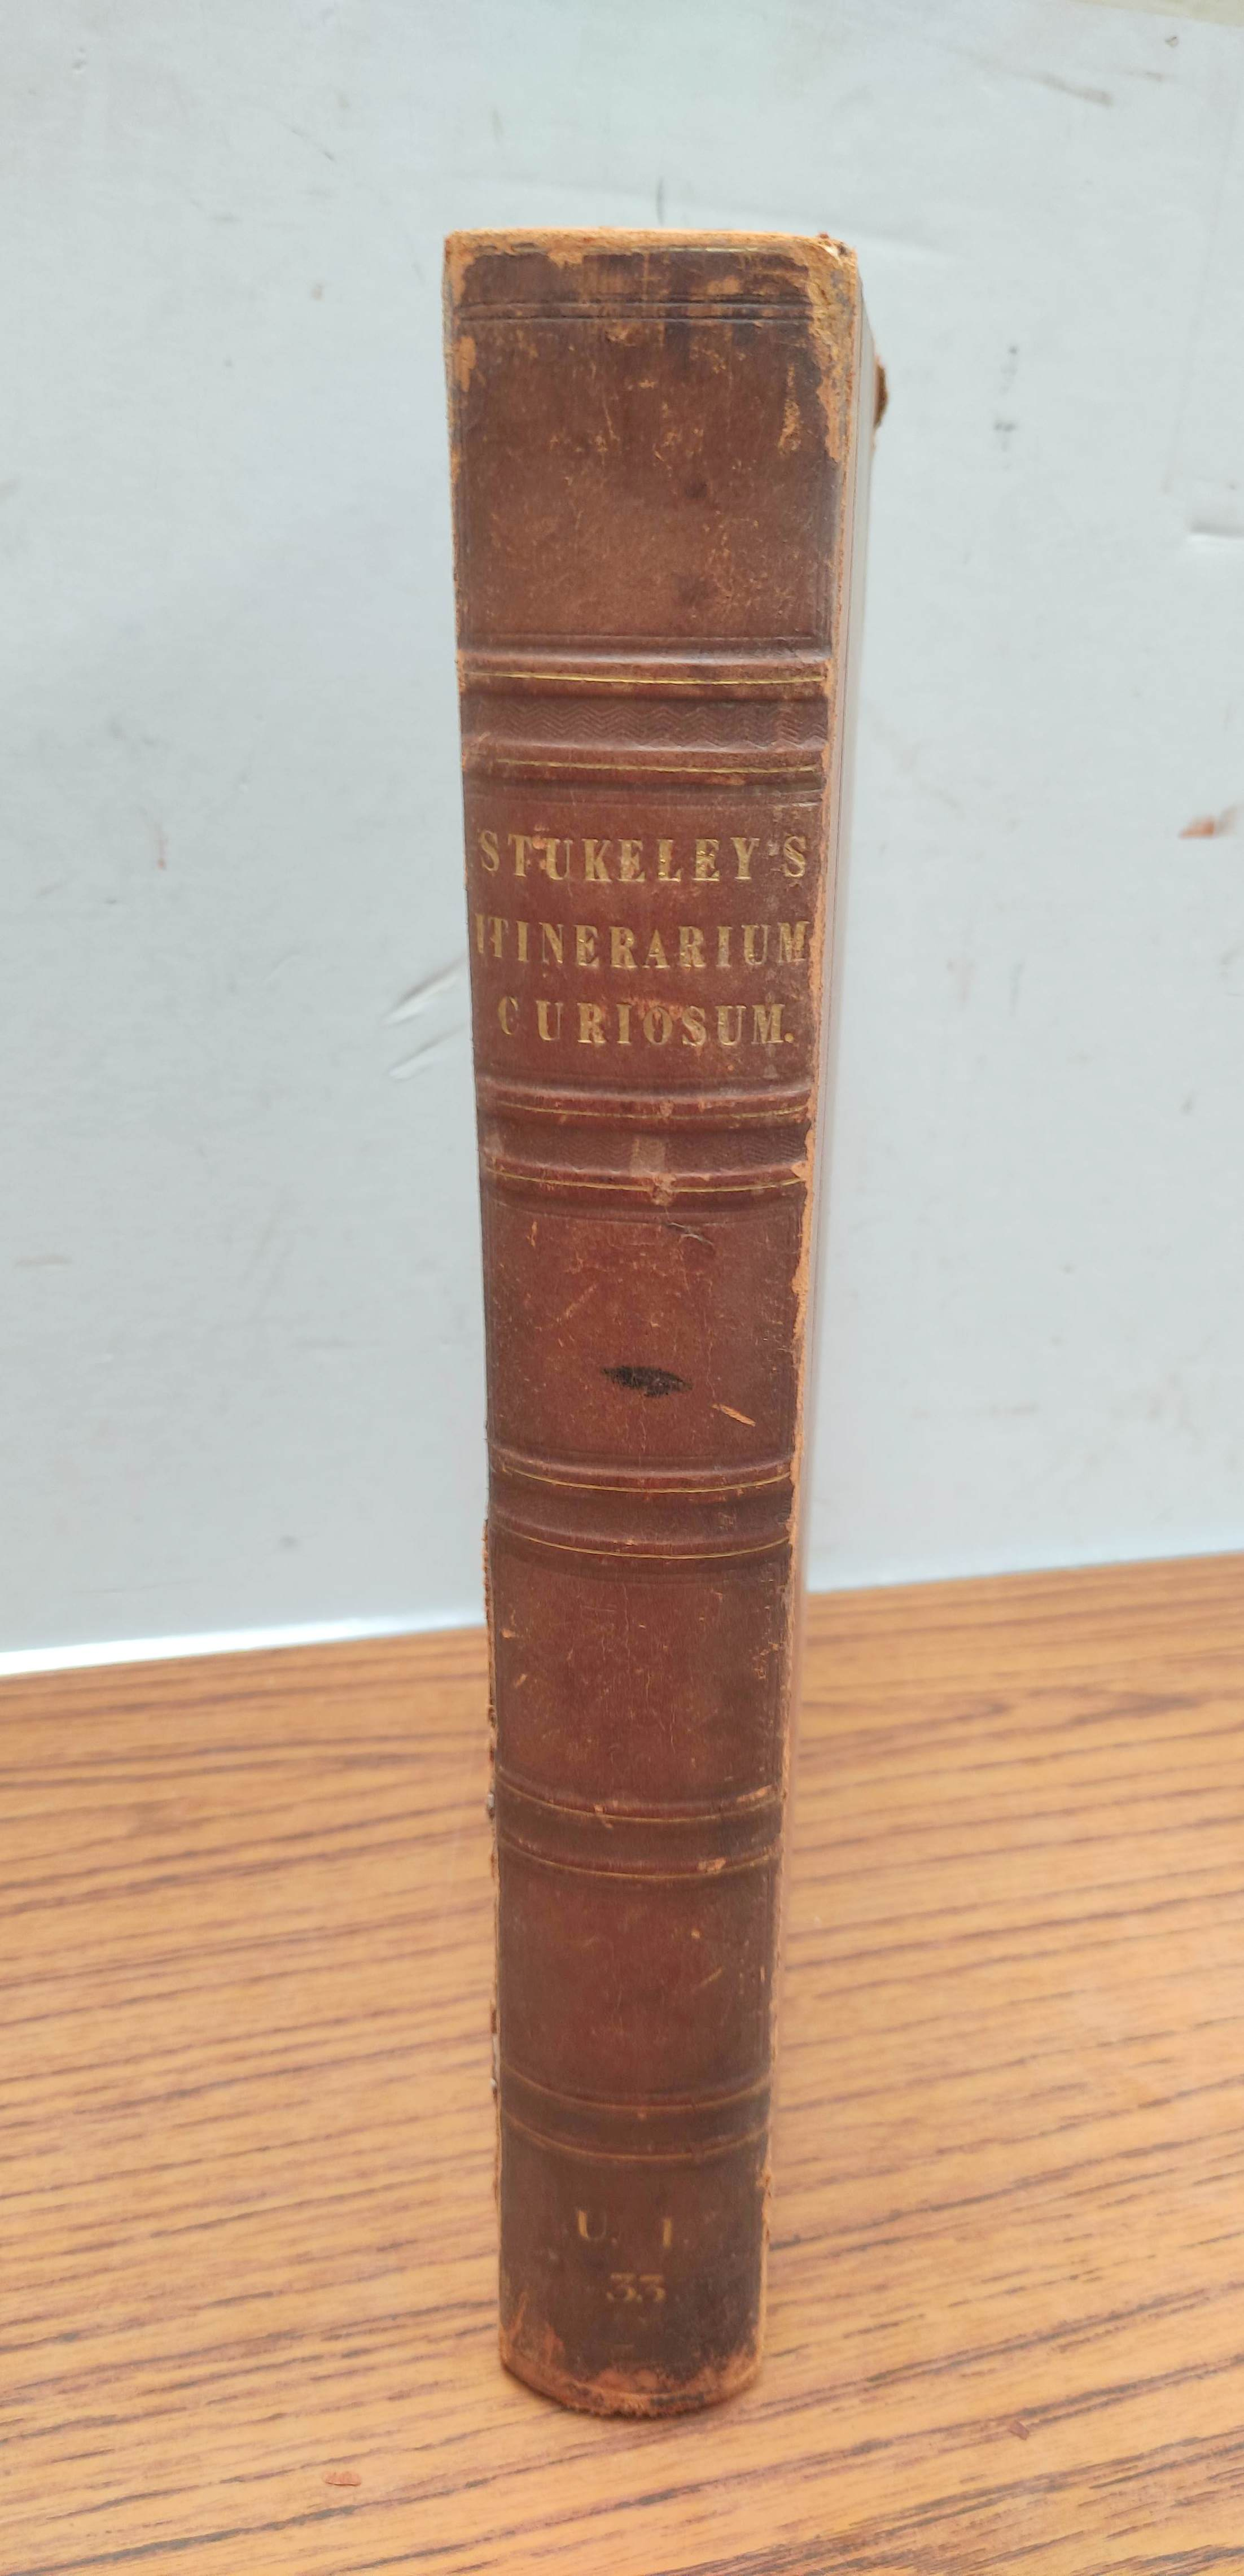 STUKELEY WILLIAM.Itinerarium Curiosum or An Account of the Antiquities & Remarkable Curiousities - Image 2 of 10